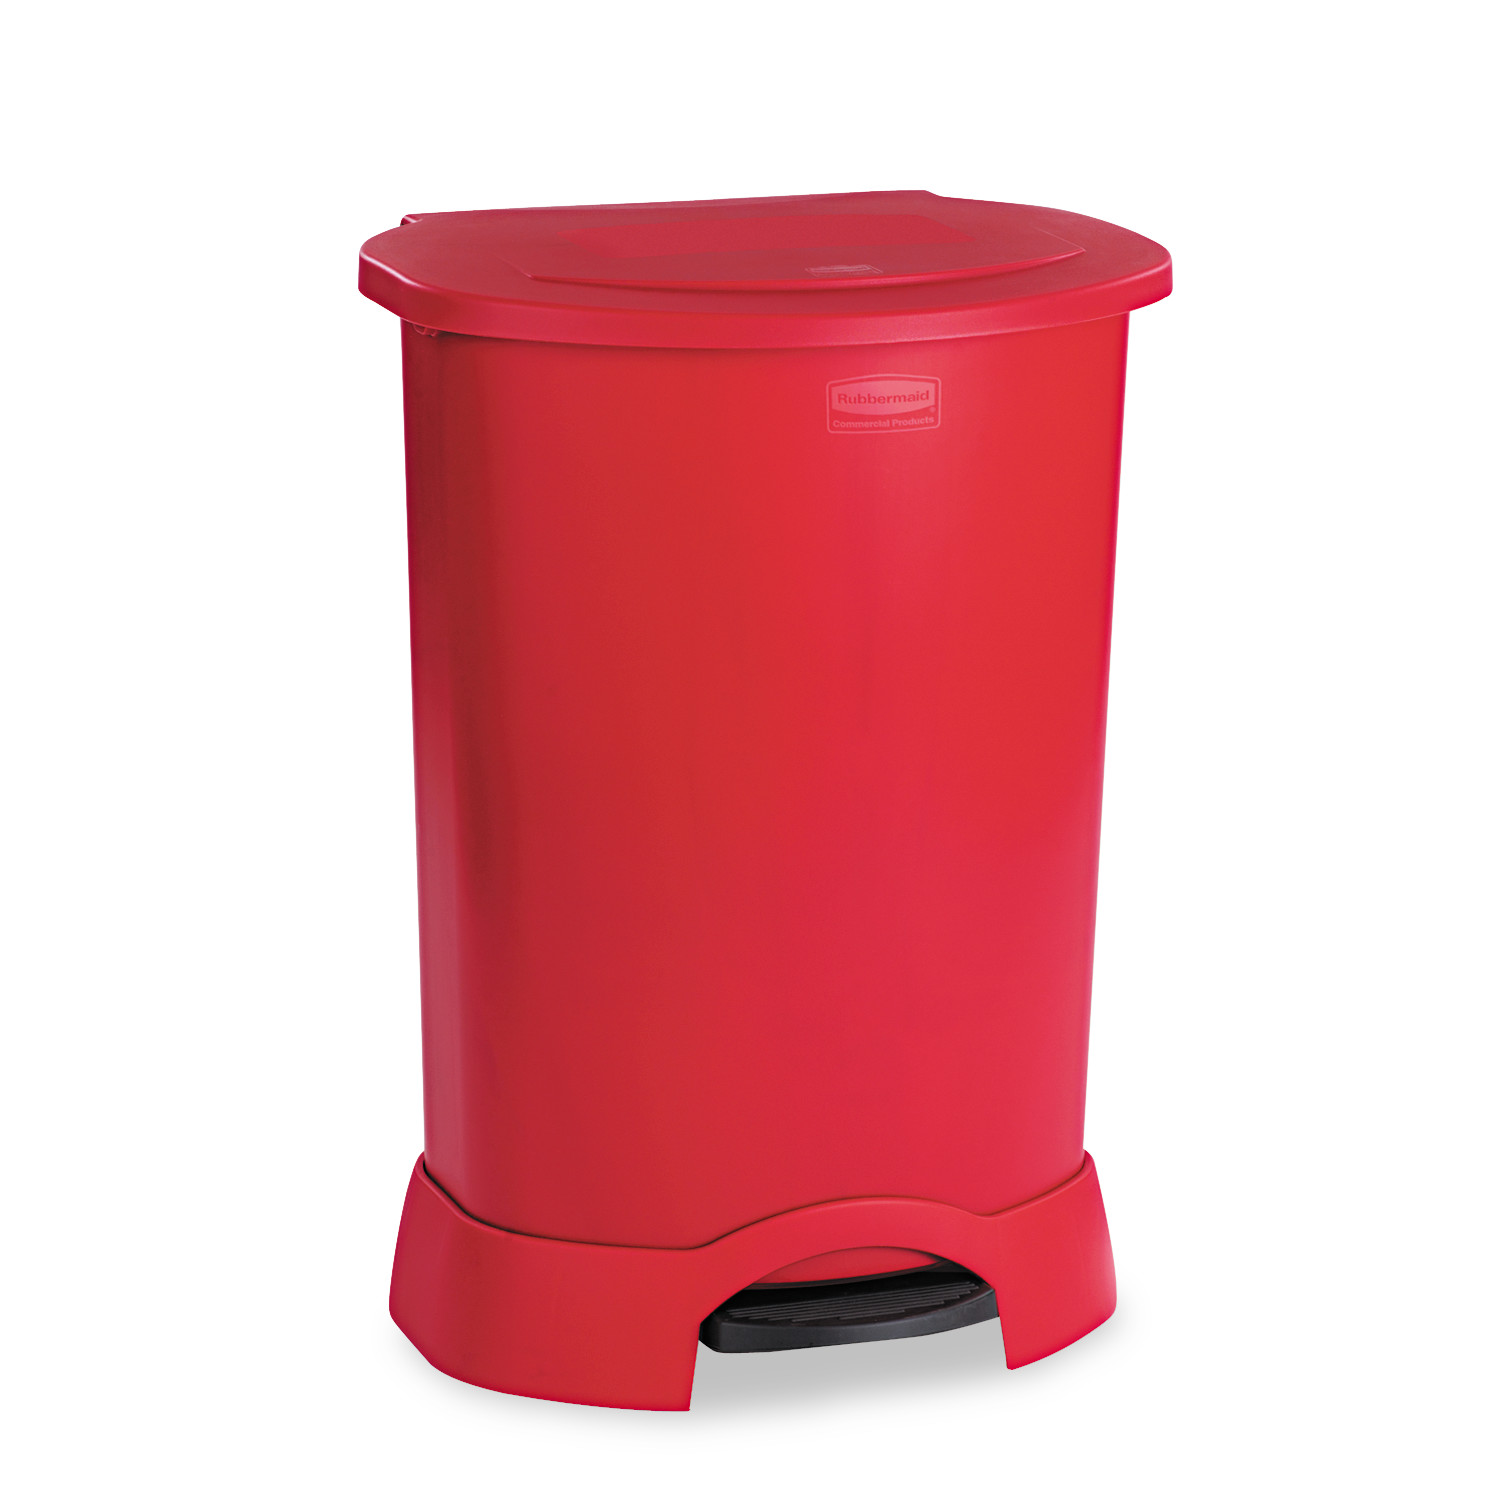 Rubbermaid Commercial Step-On Container, Oval, Polyethylene, 30gal, Red